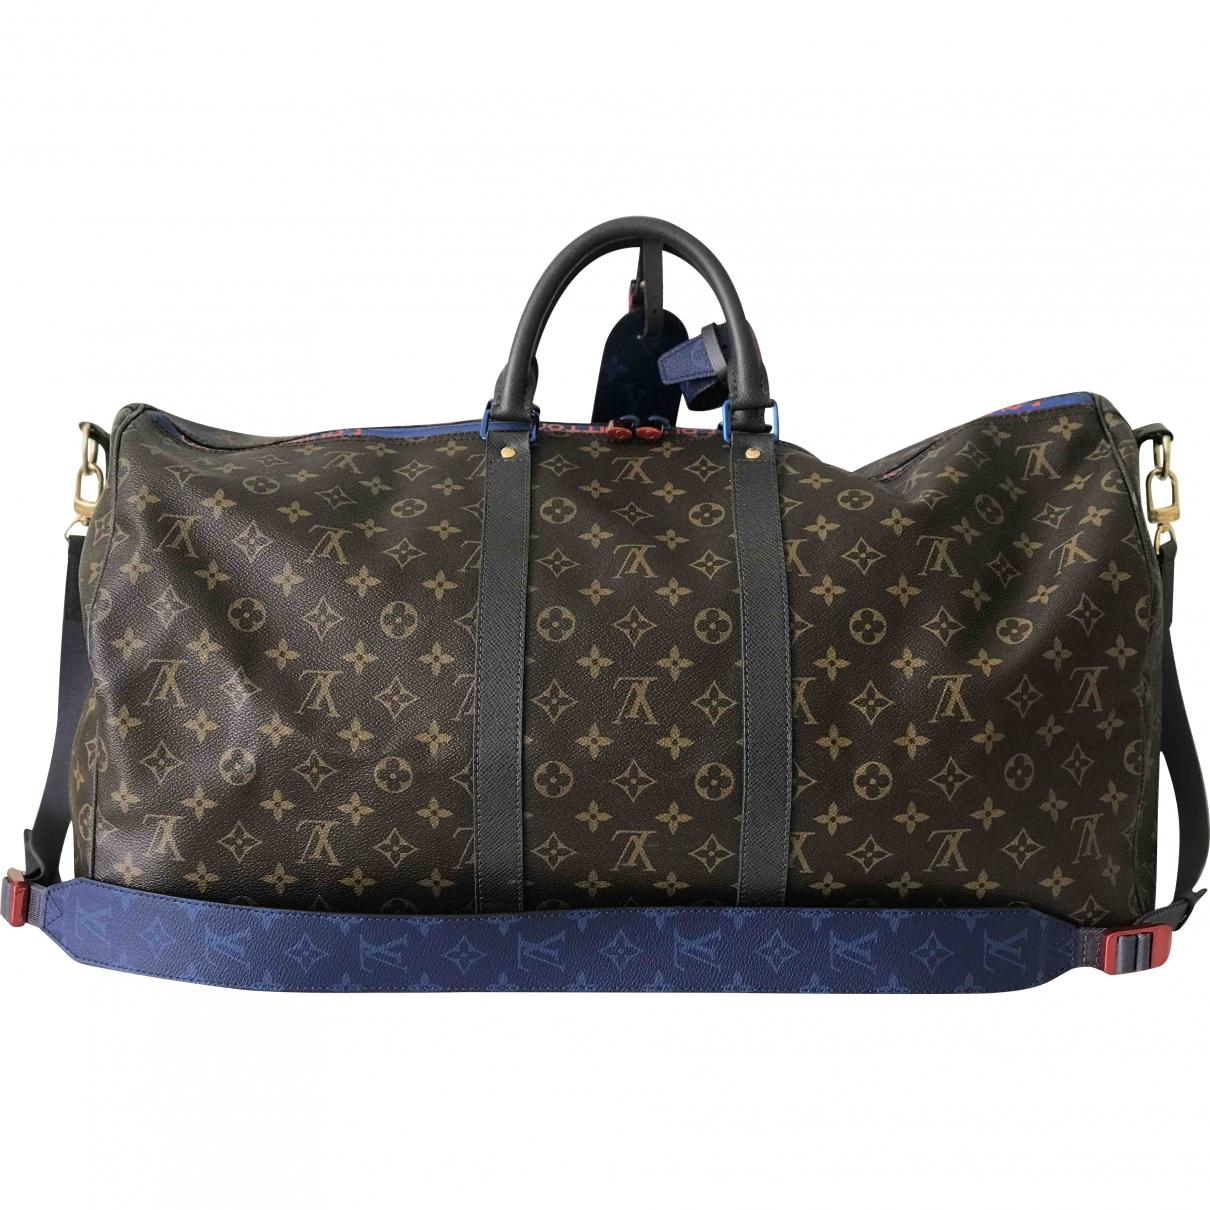 718d4db88c1a Louis Vuitton. Women s Black Pre-owned Keepall Multicolour Leather Travel  Bags